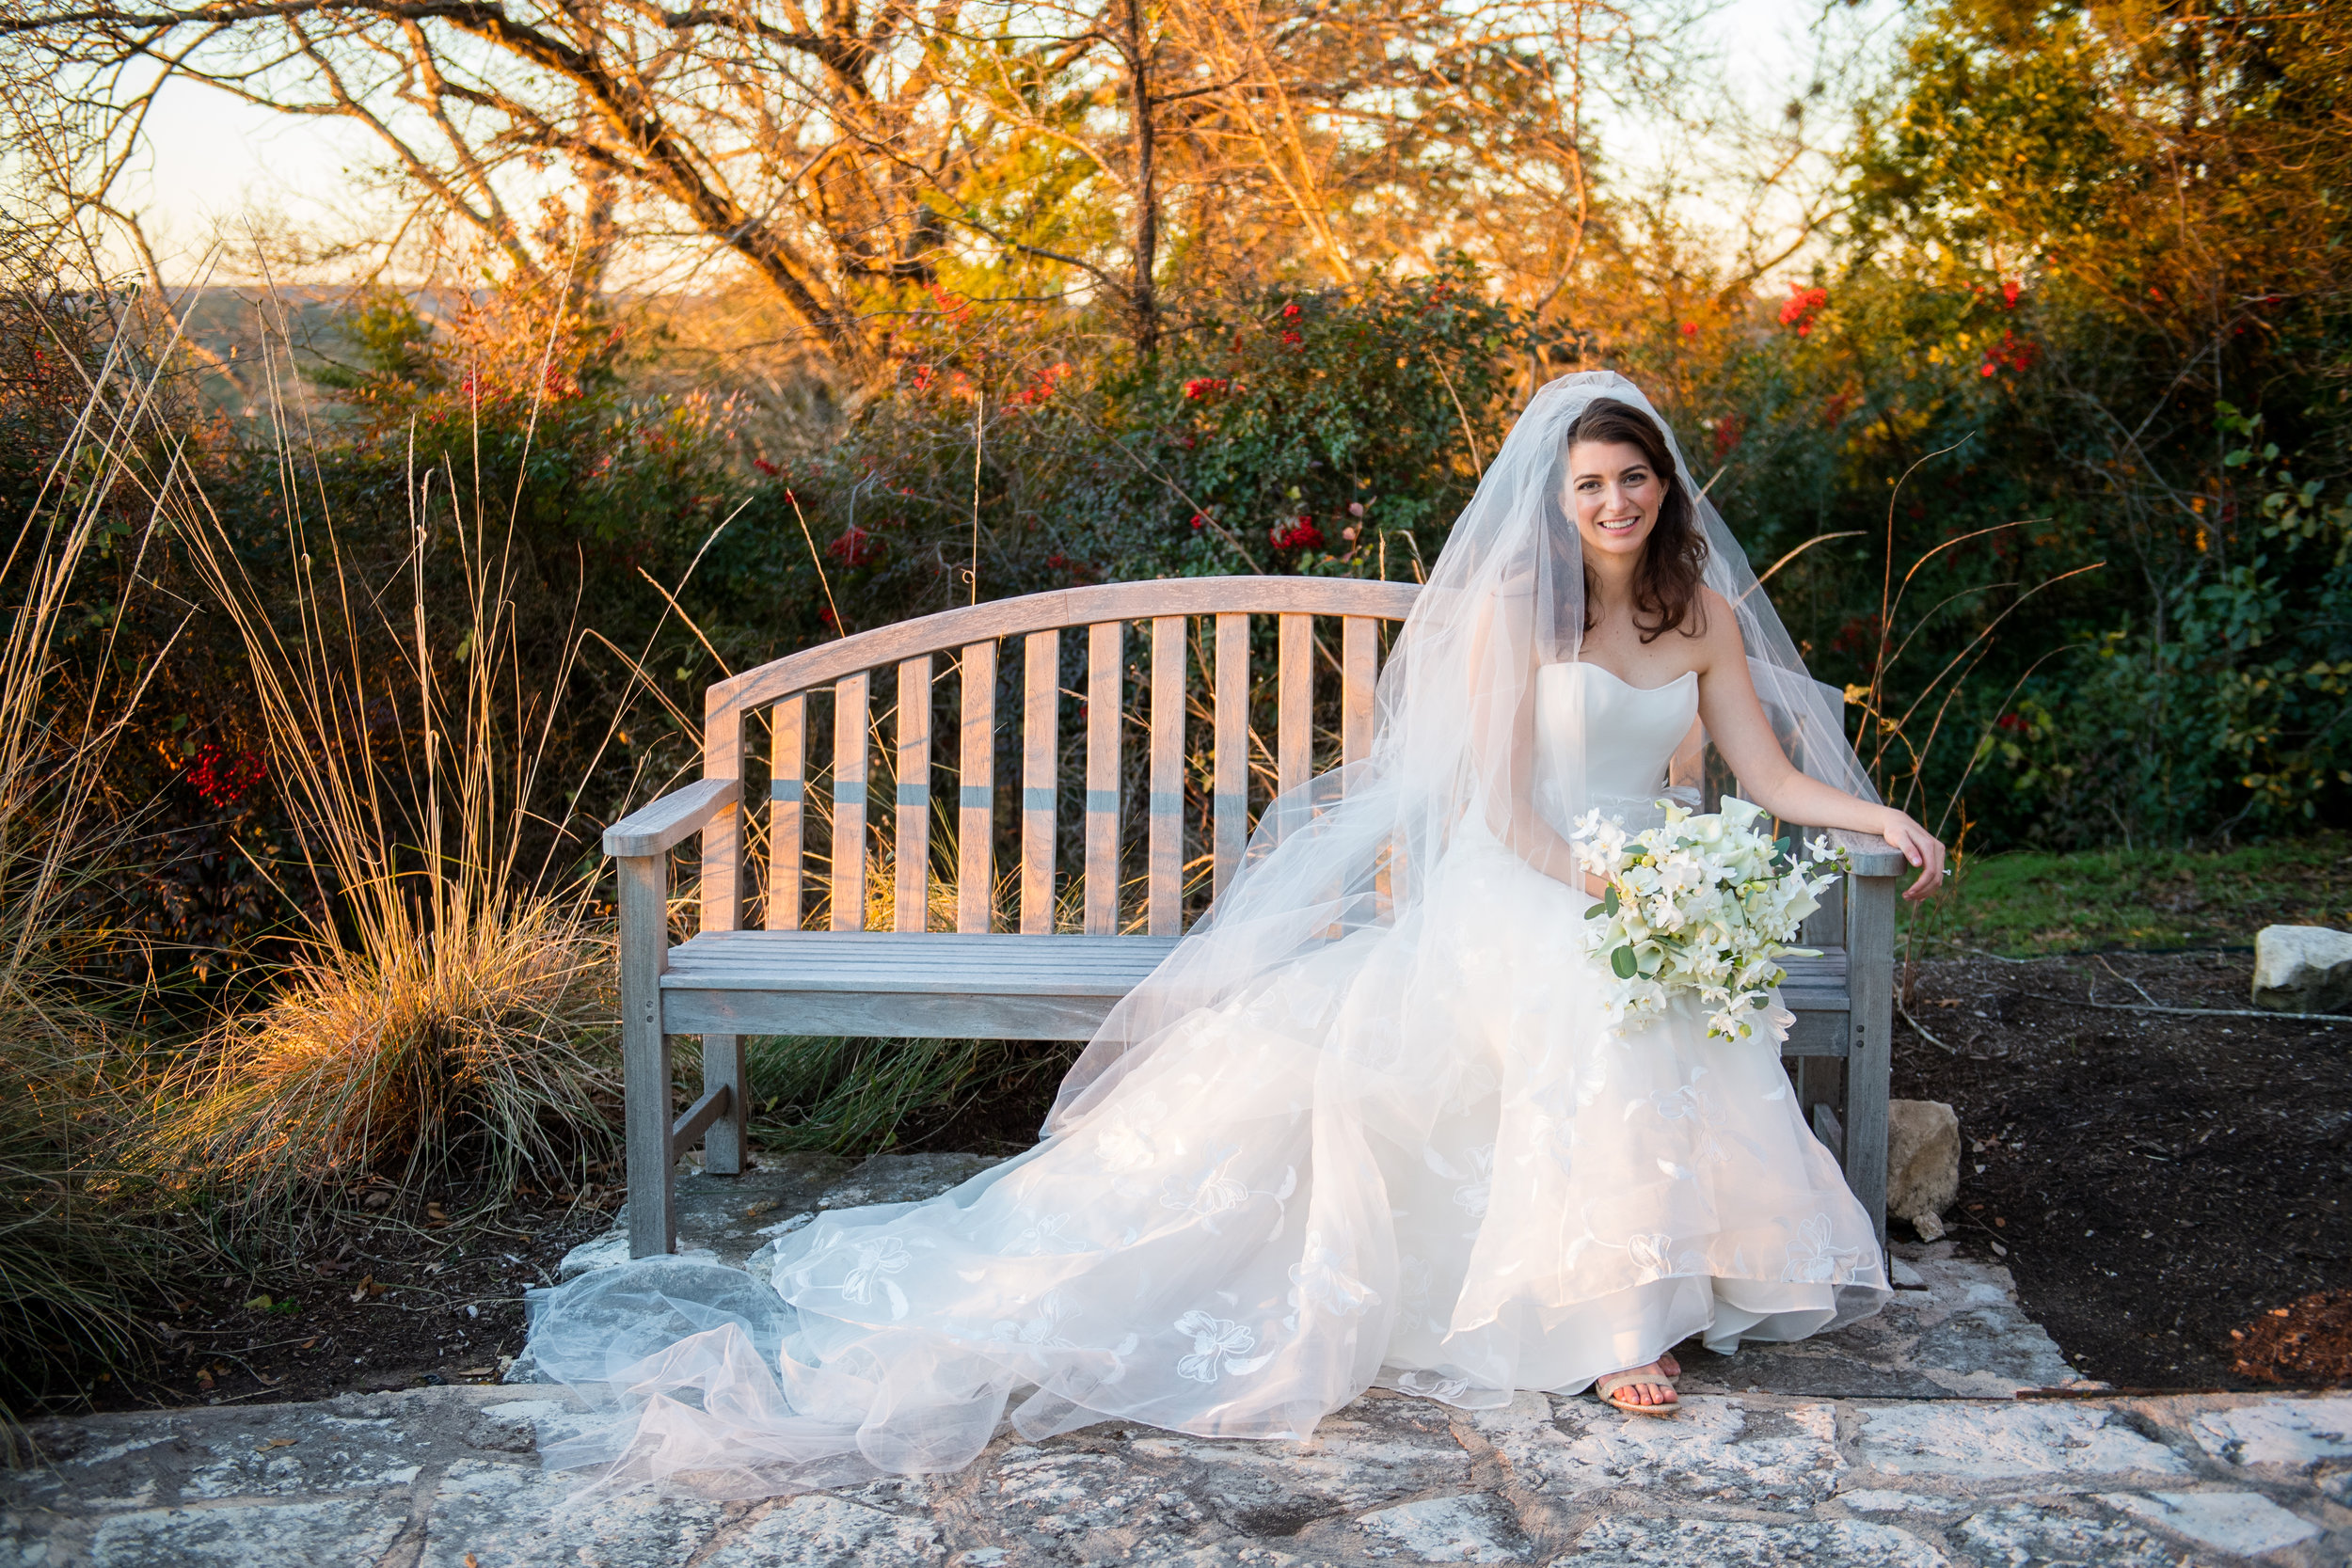 """Our wedding was made possible because of Barbara Shorts and her team! They are experienced event planners that give great advice during every phase of the wedding planning process. From venue selection to cake tasting Barbara is connected with Austin's most capable vendors. Her organization and planning skills made our wedding a breeze!""  -Corinne T., Bride"